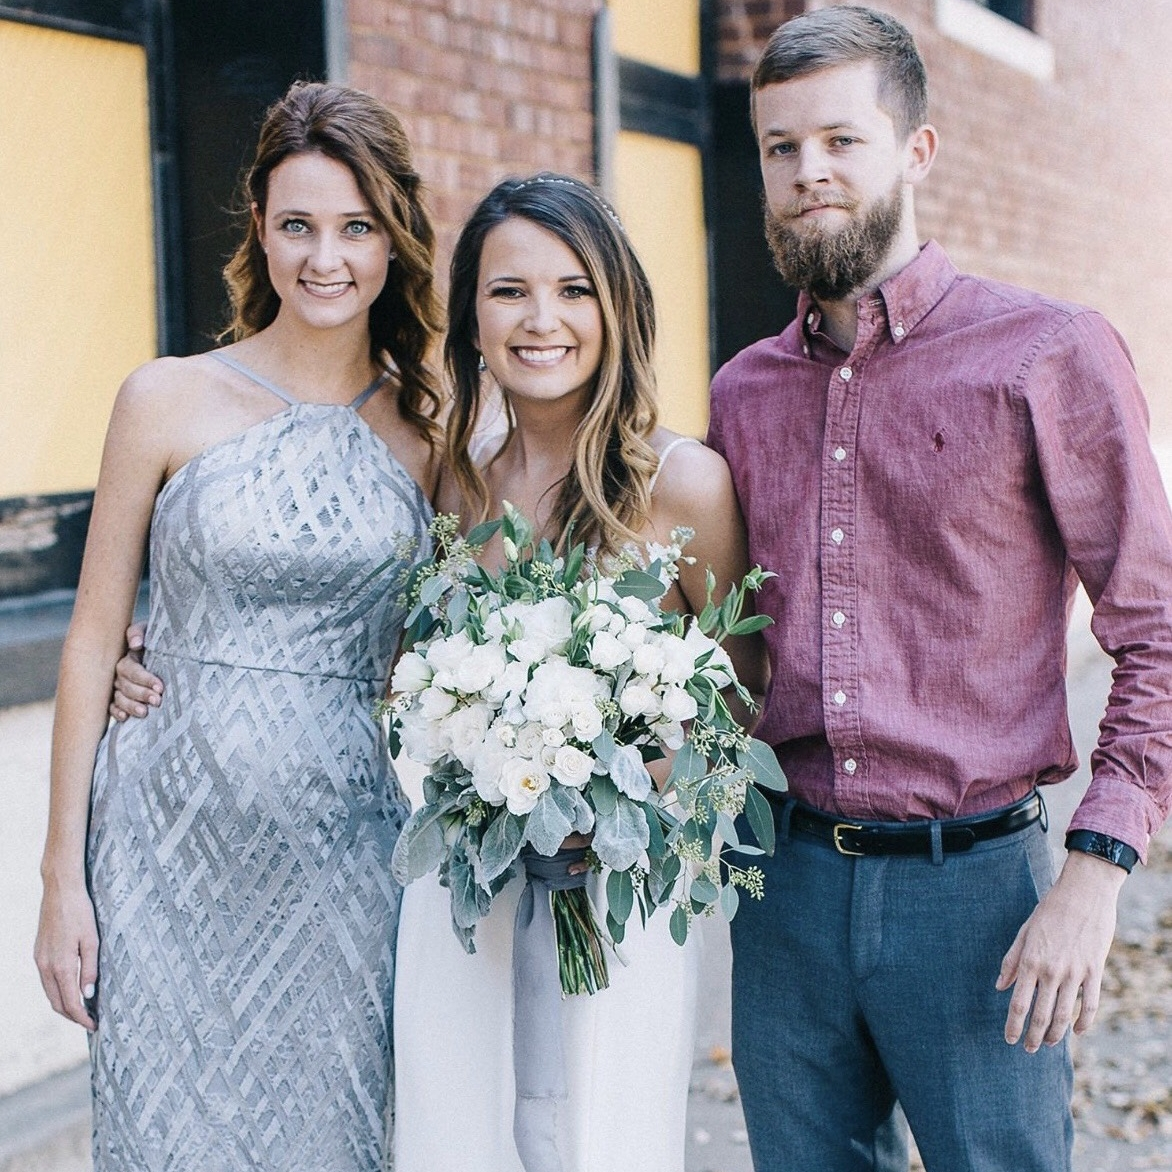 Natalie with her siblings on her wedding day